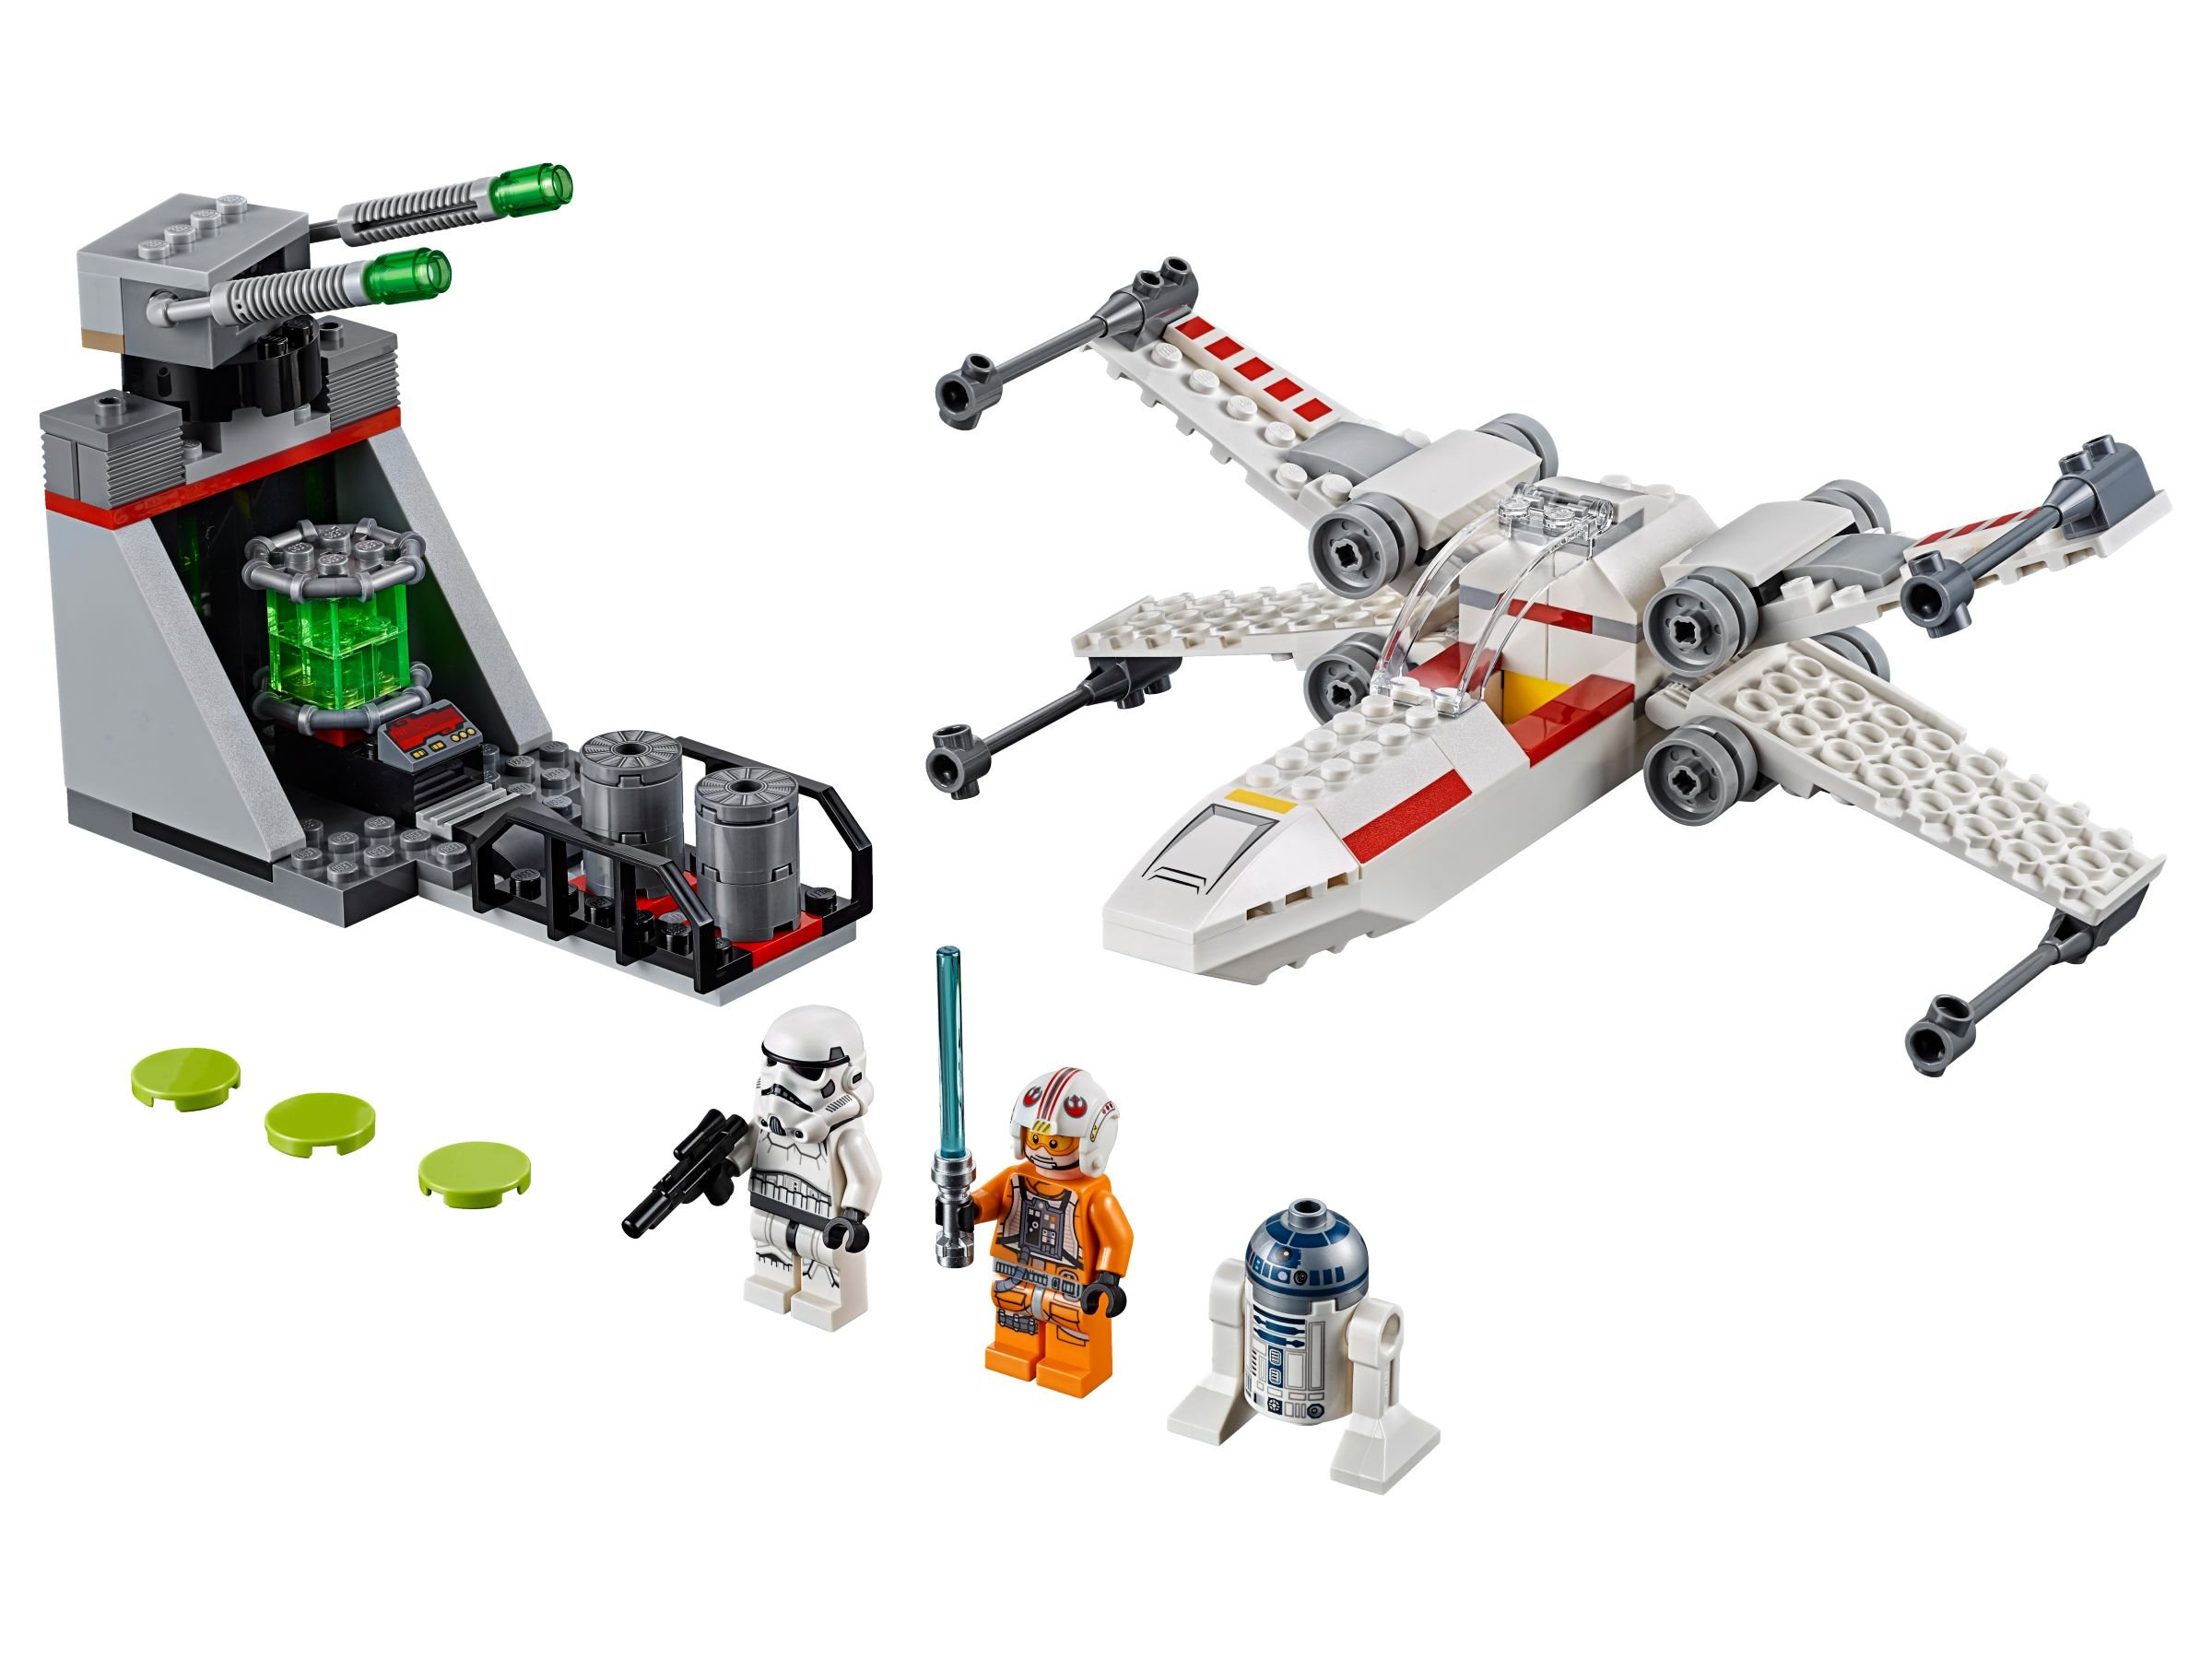 LEGO Star Wars 75235 X-Wing Starfighter